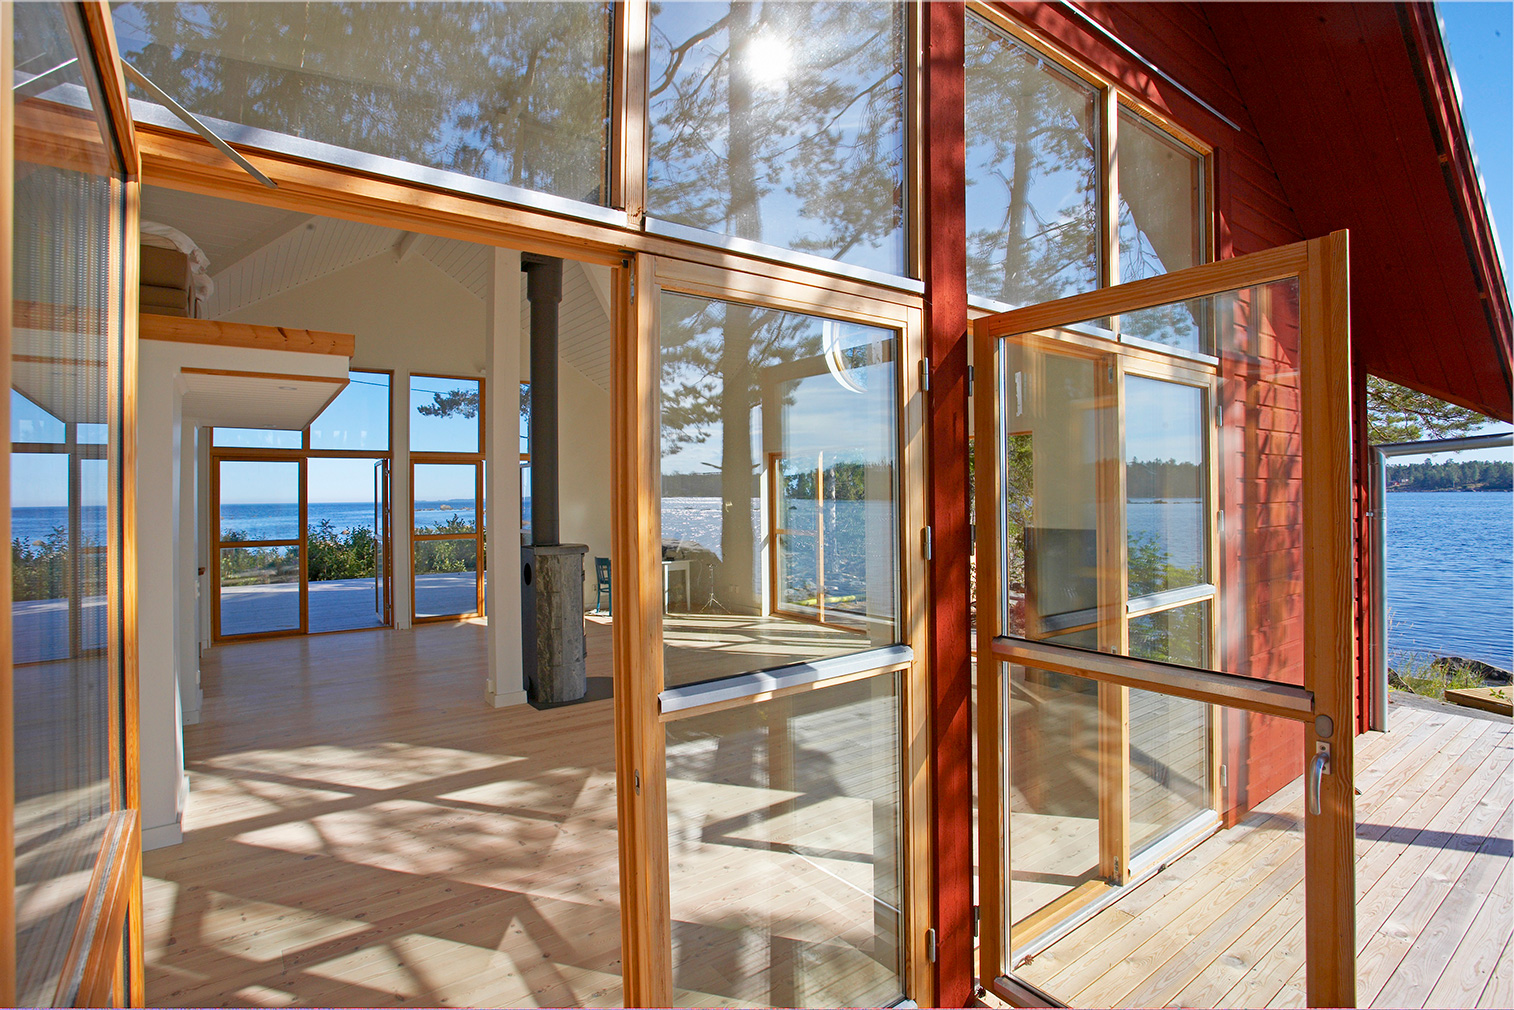 A private Swedish island with red cabin could be yours for 13.9m Kr